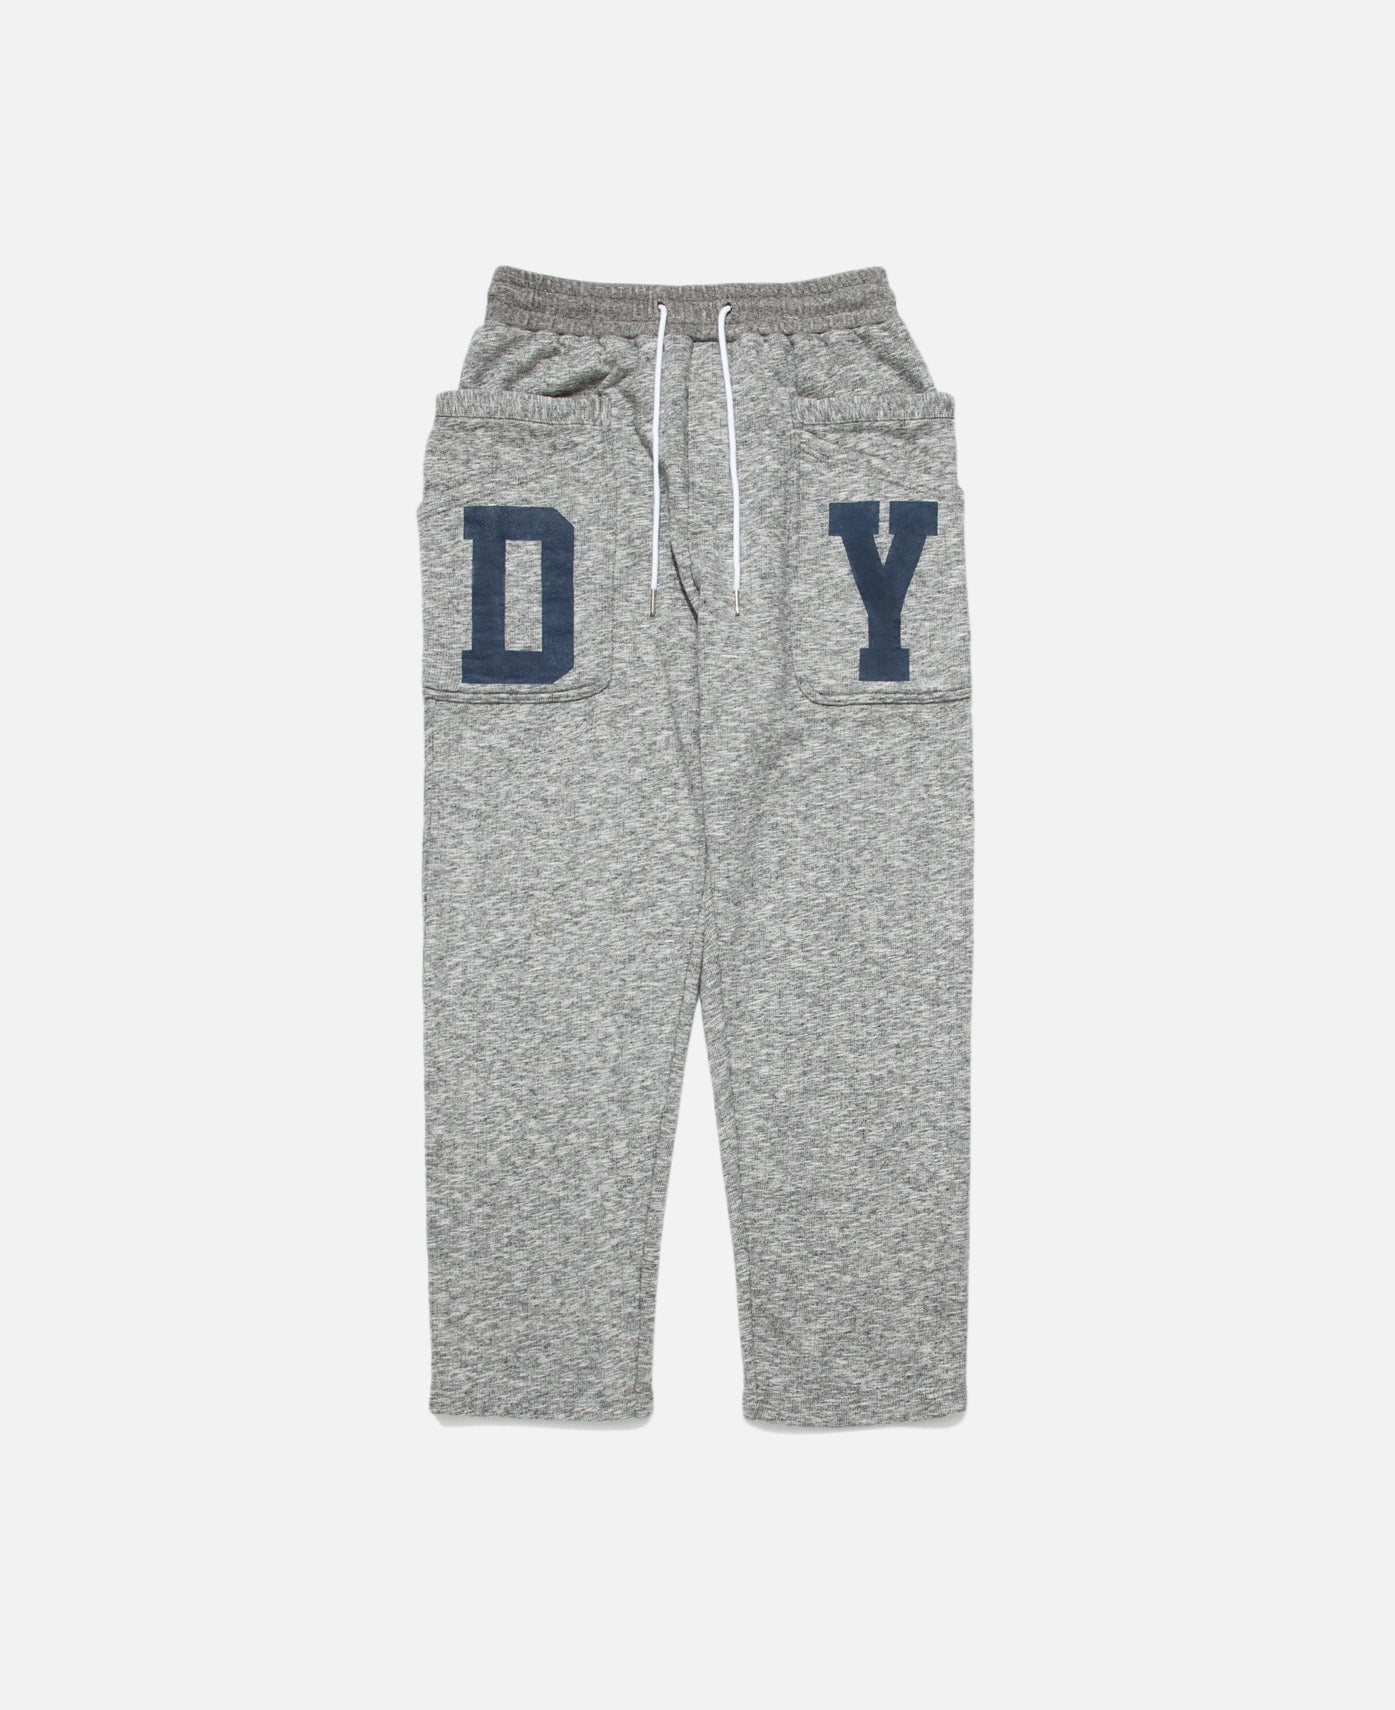 DY Sweatpants (Grey)